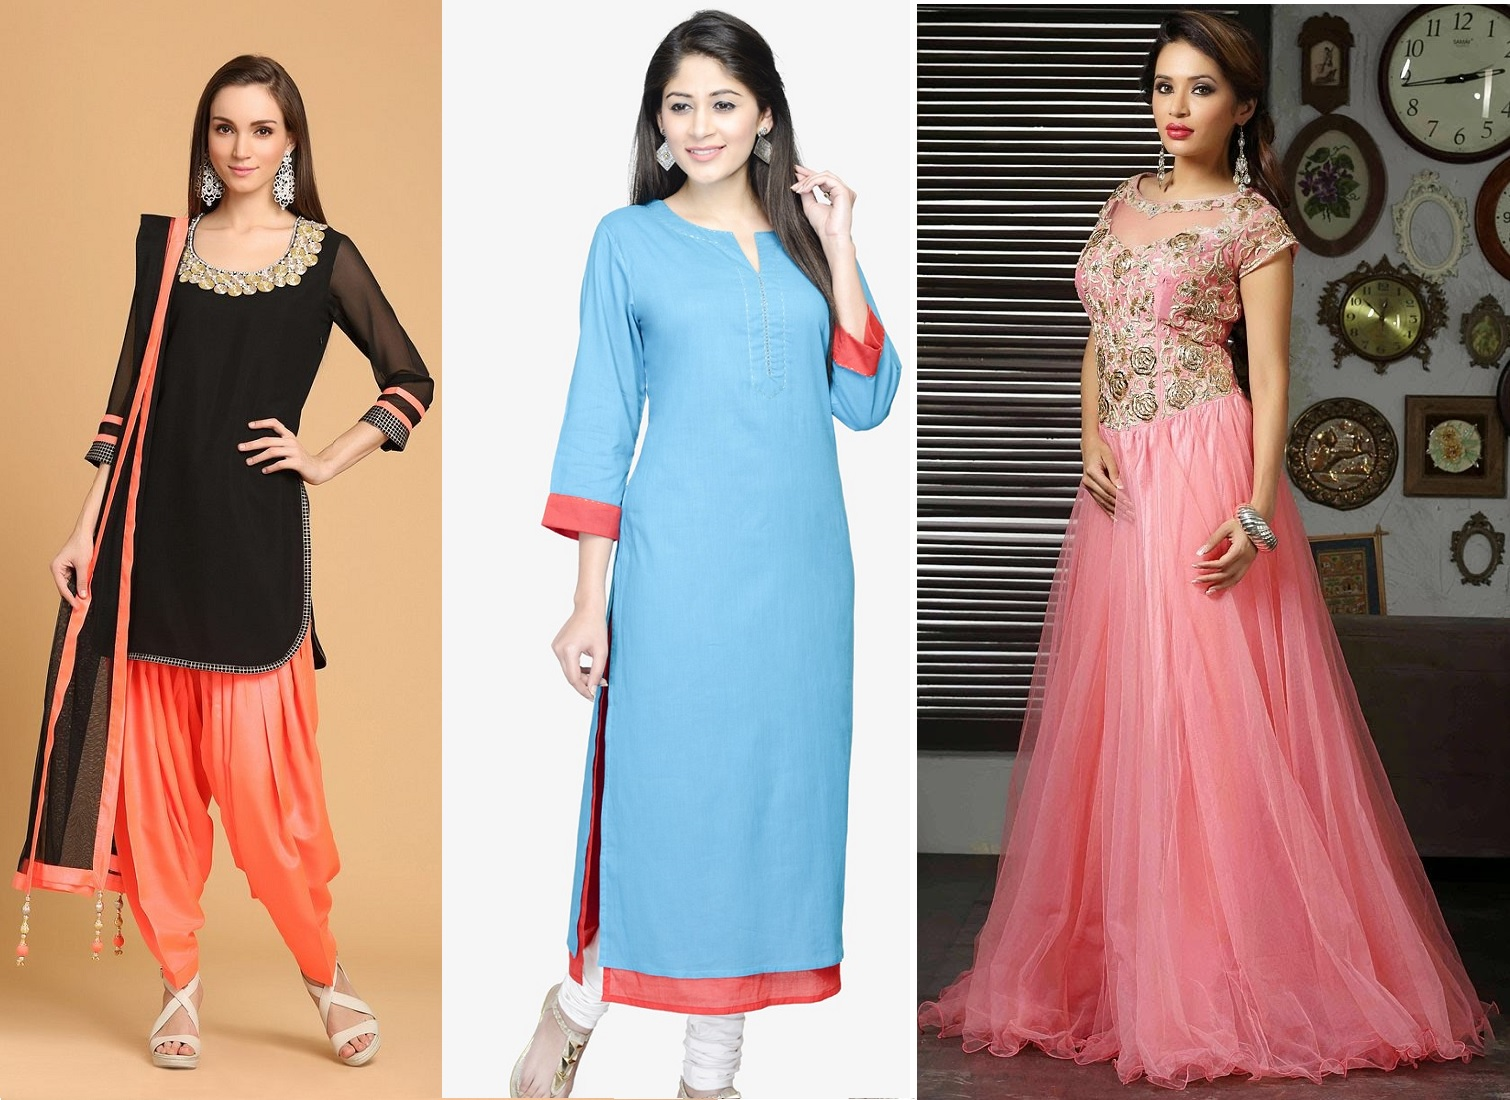 Fashion Tips For Shorter Women To Look Tall With Indian Ethnic Clothing Indian Fashion Trends